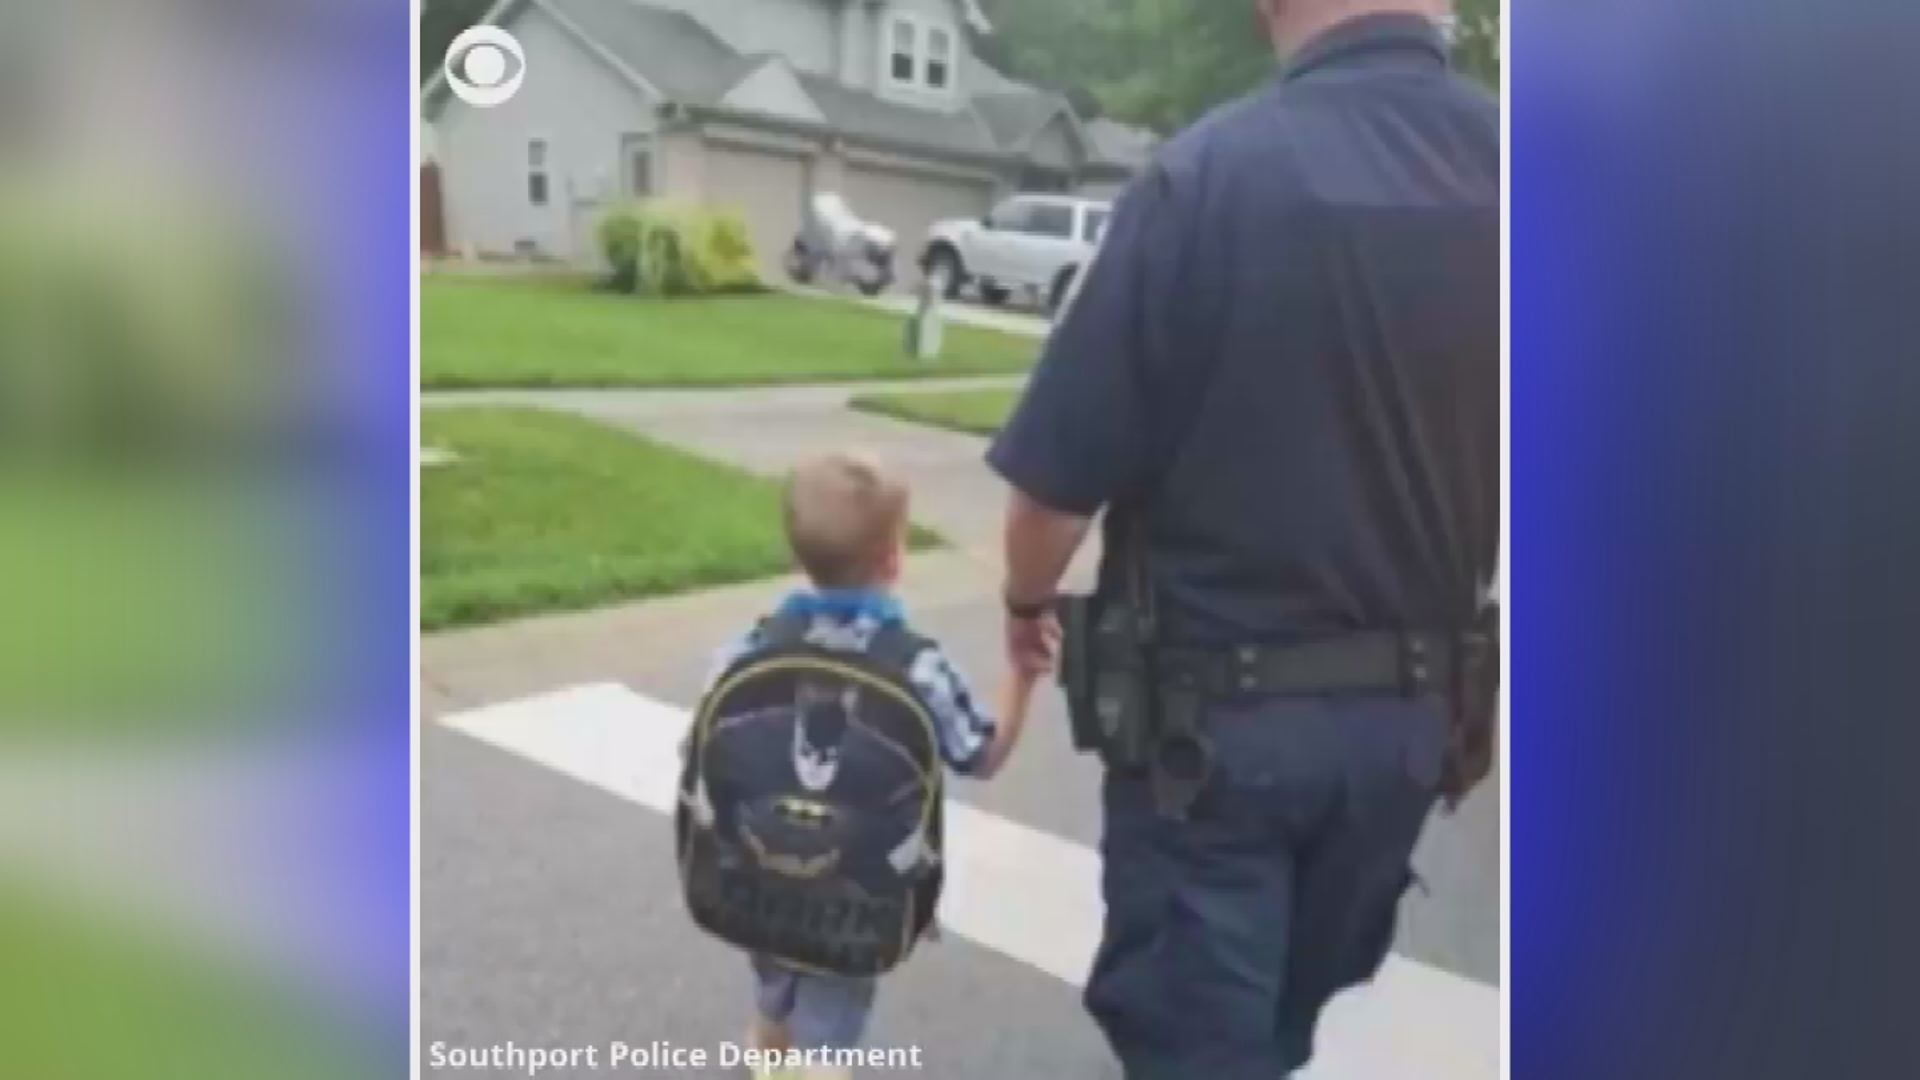 Police escort son of fallen officer to first day of school